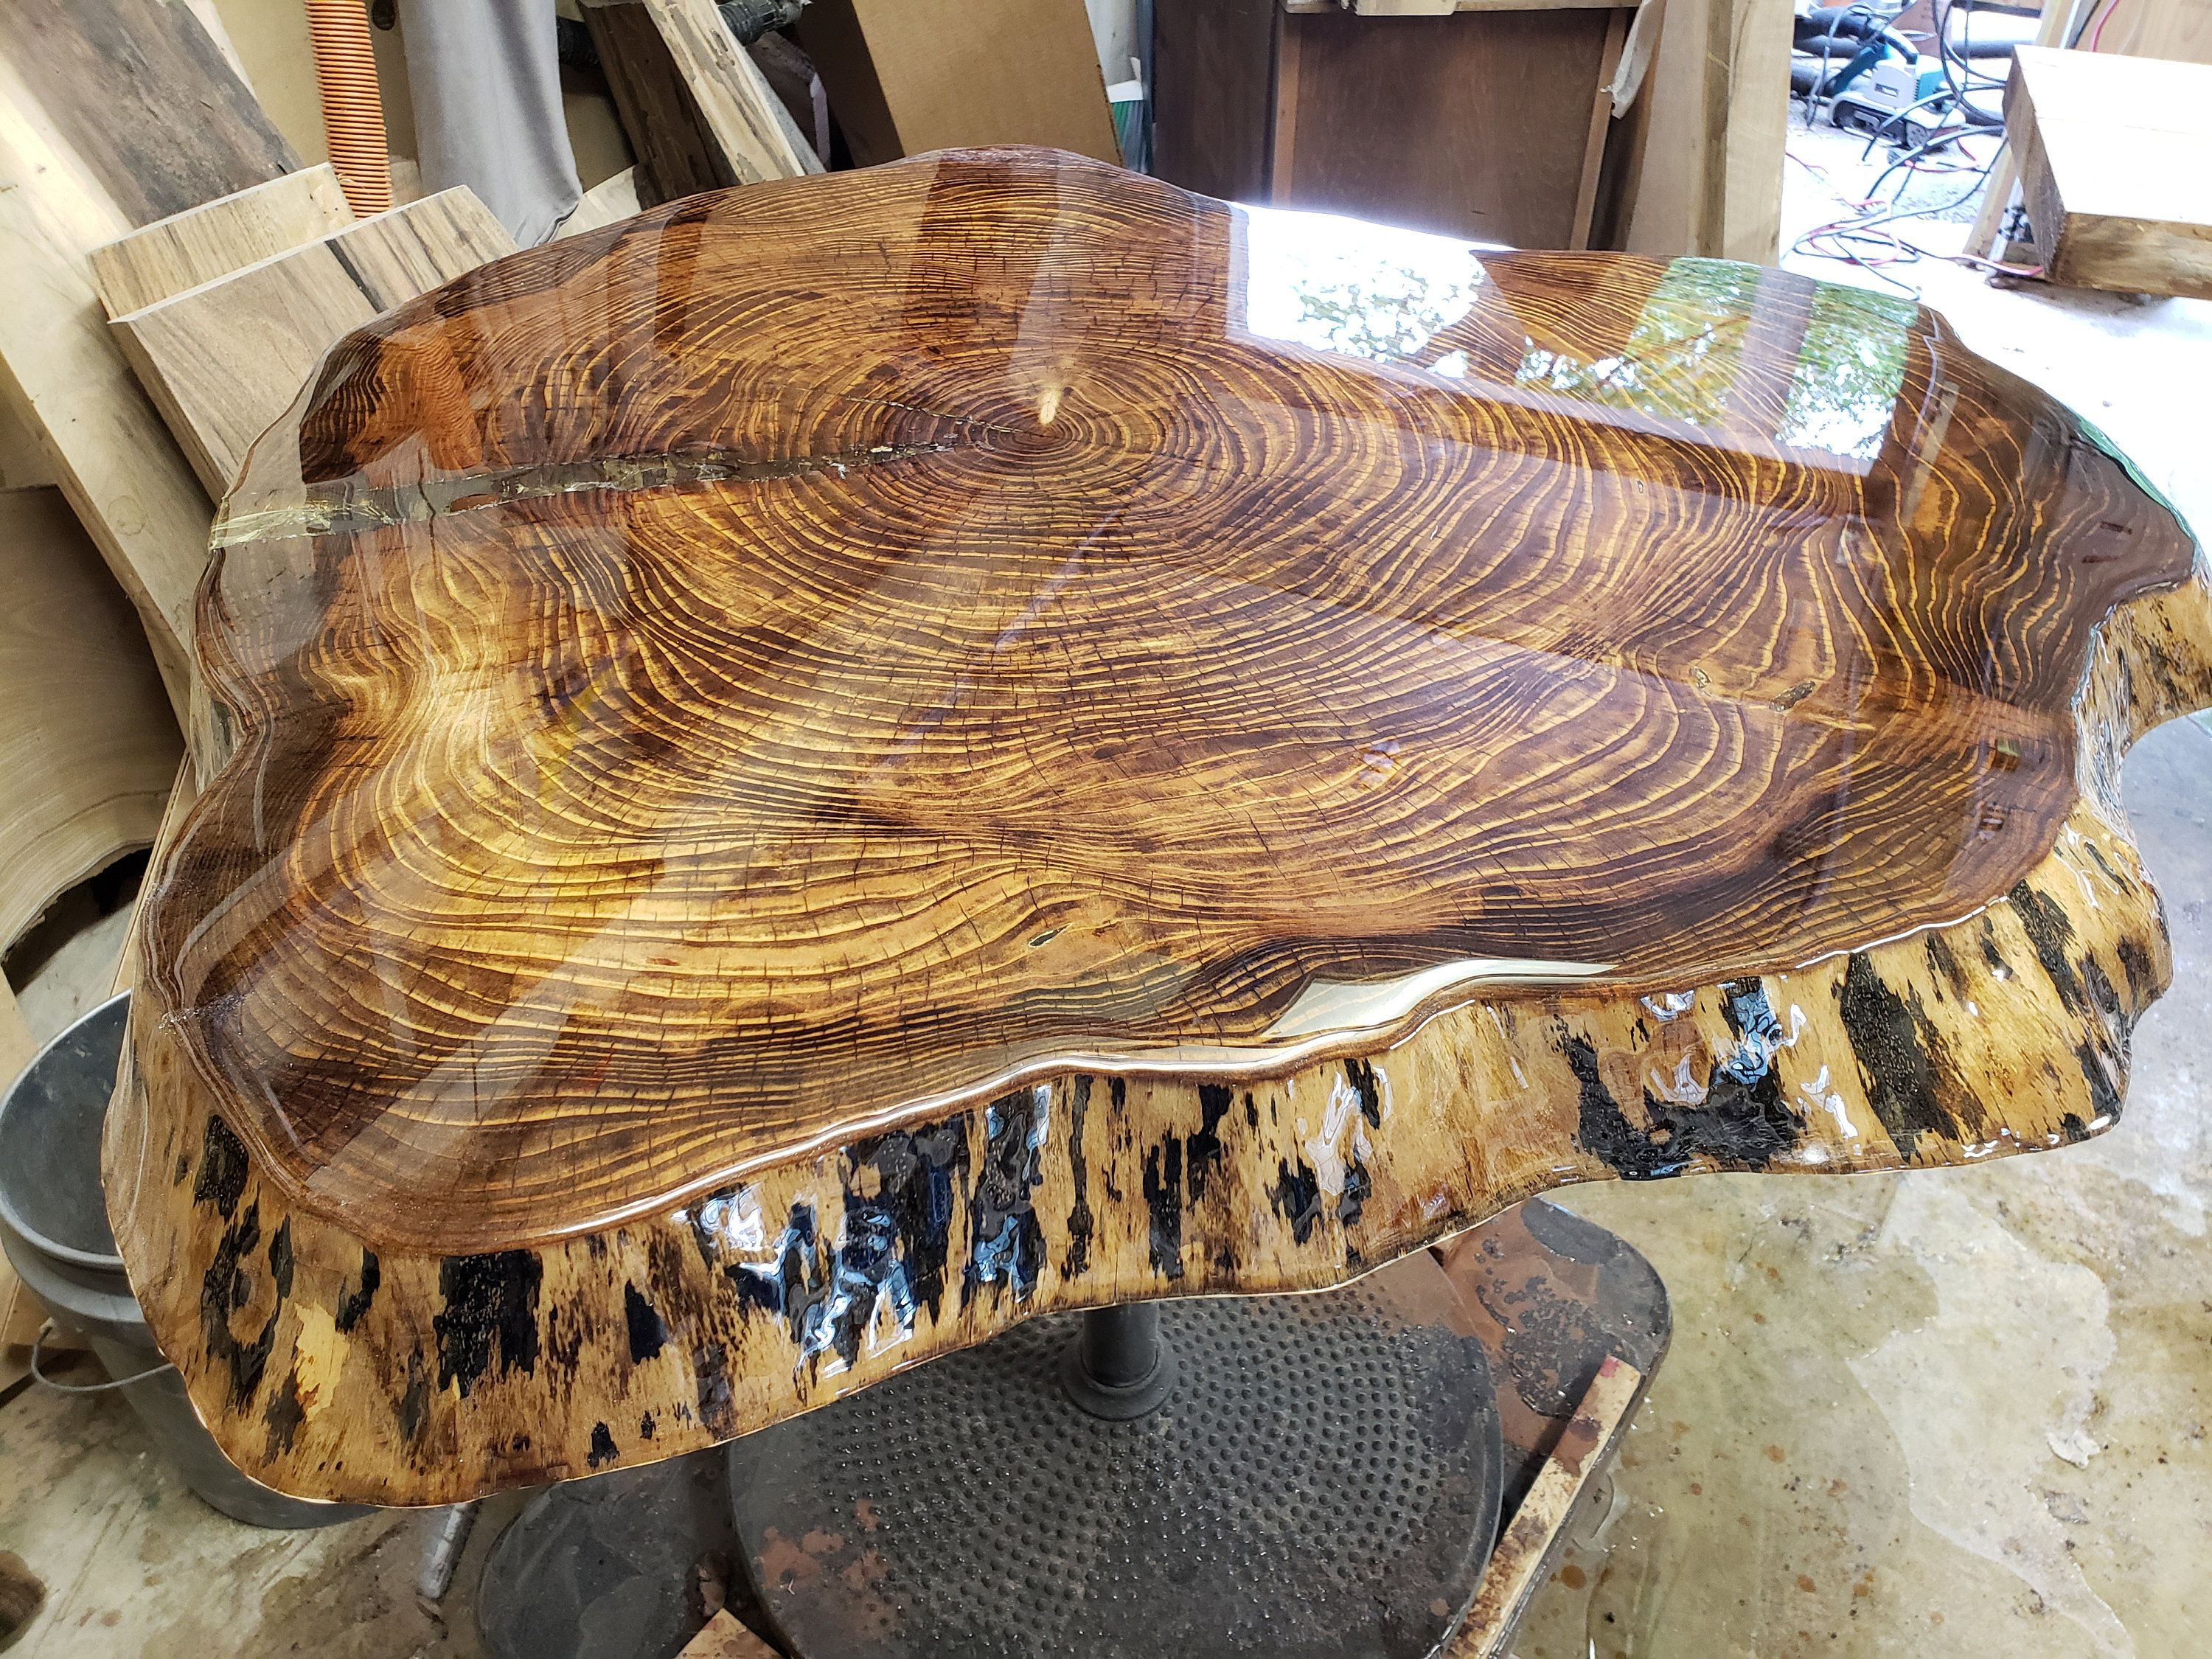 Live Edge Charred Wood Table Top Epoxy Resin Slab Wood Coffee Table Pub Table Round Wood Slab Wood Slab Dining Table Coffee Table Wood Round Wood Table